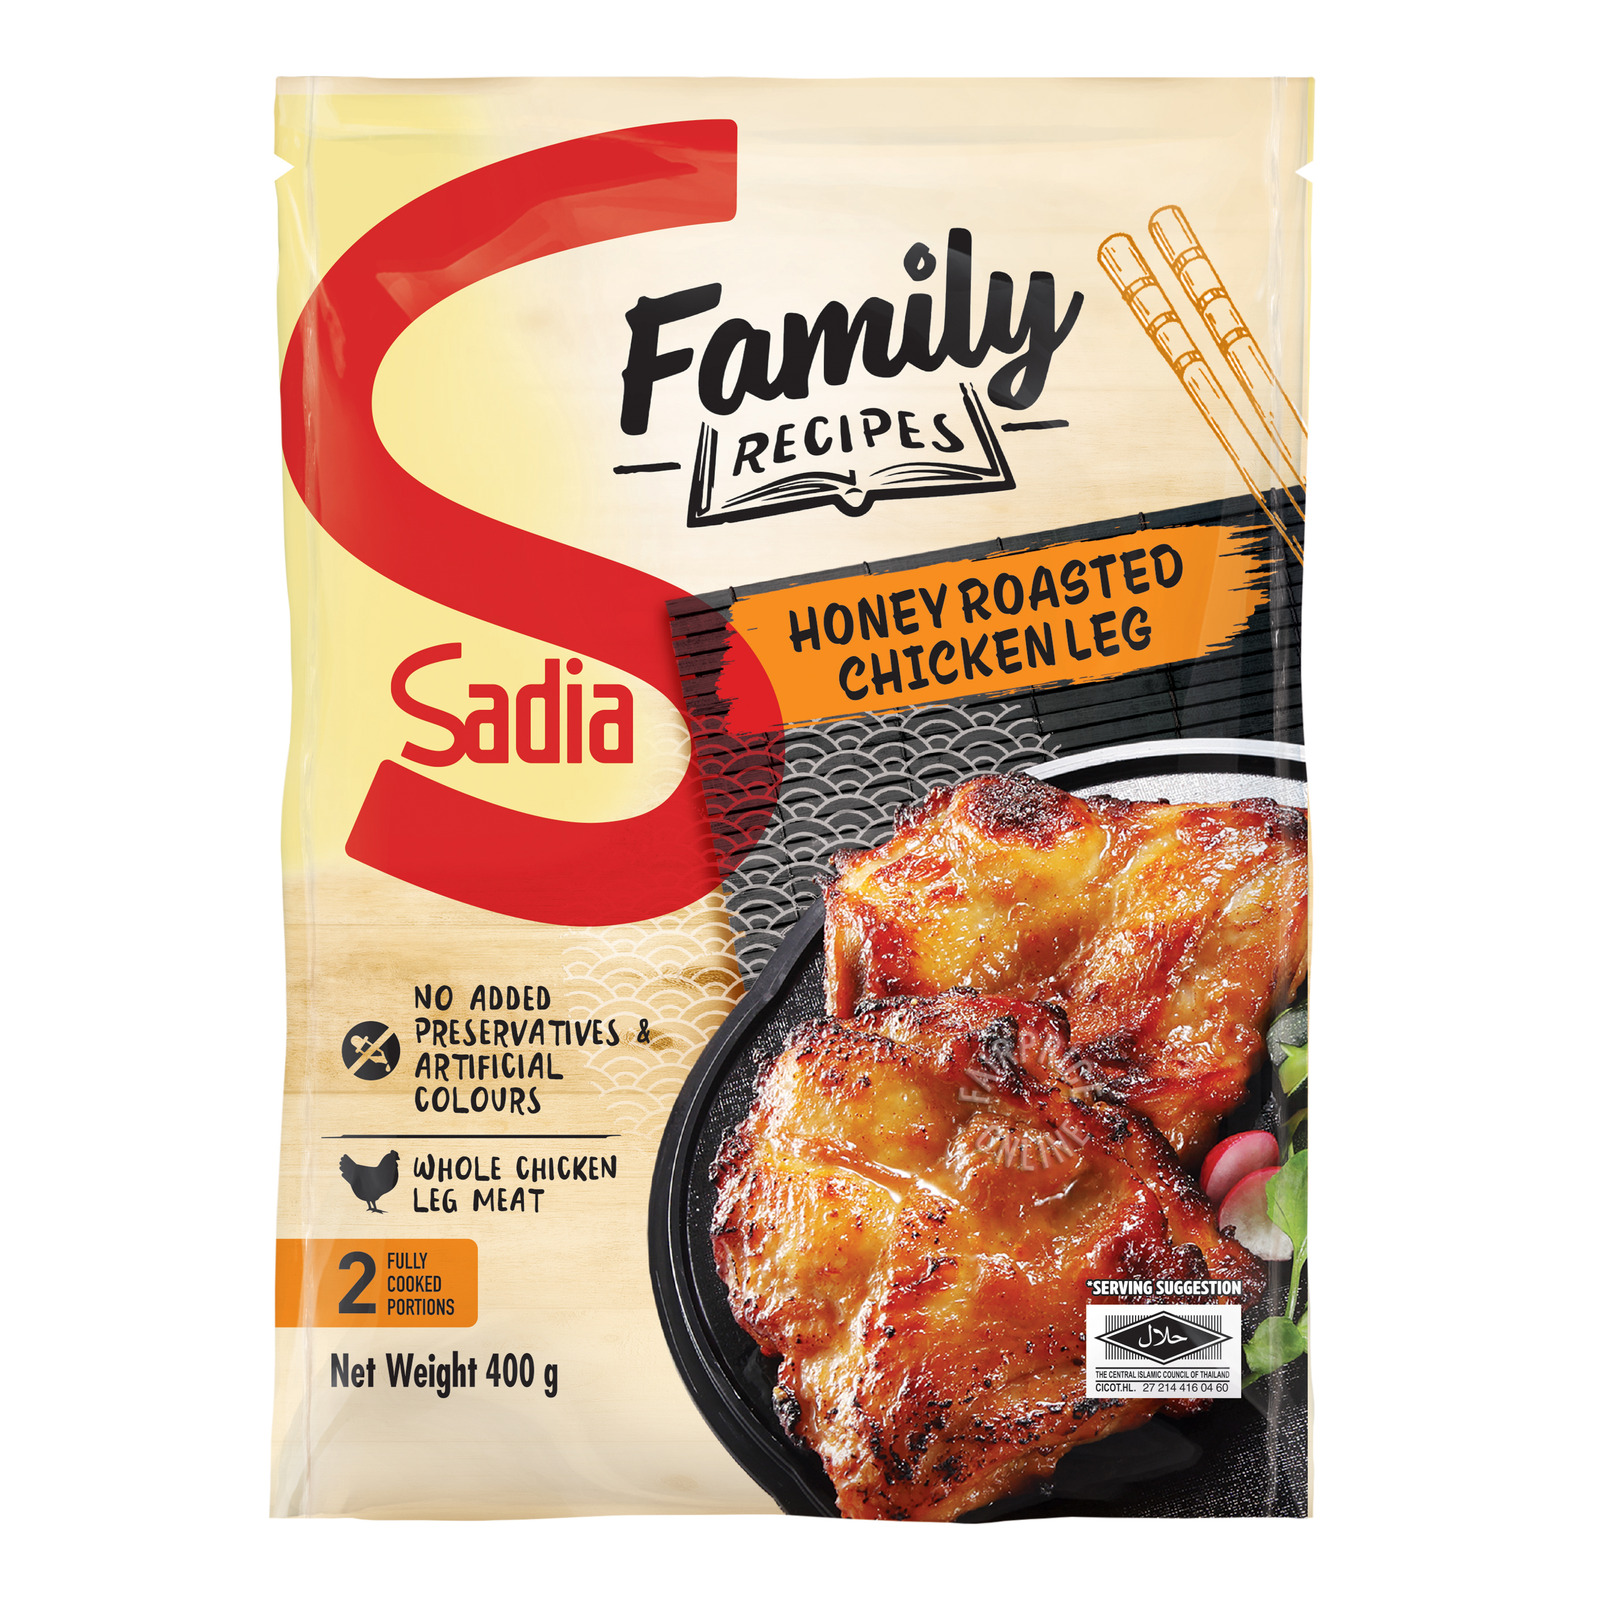 Sadia Frozen Roasted Chicken Leg - Honey